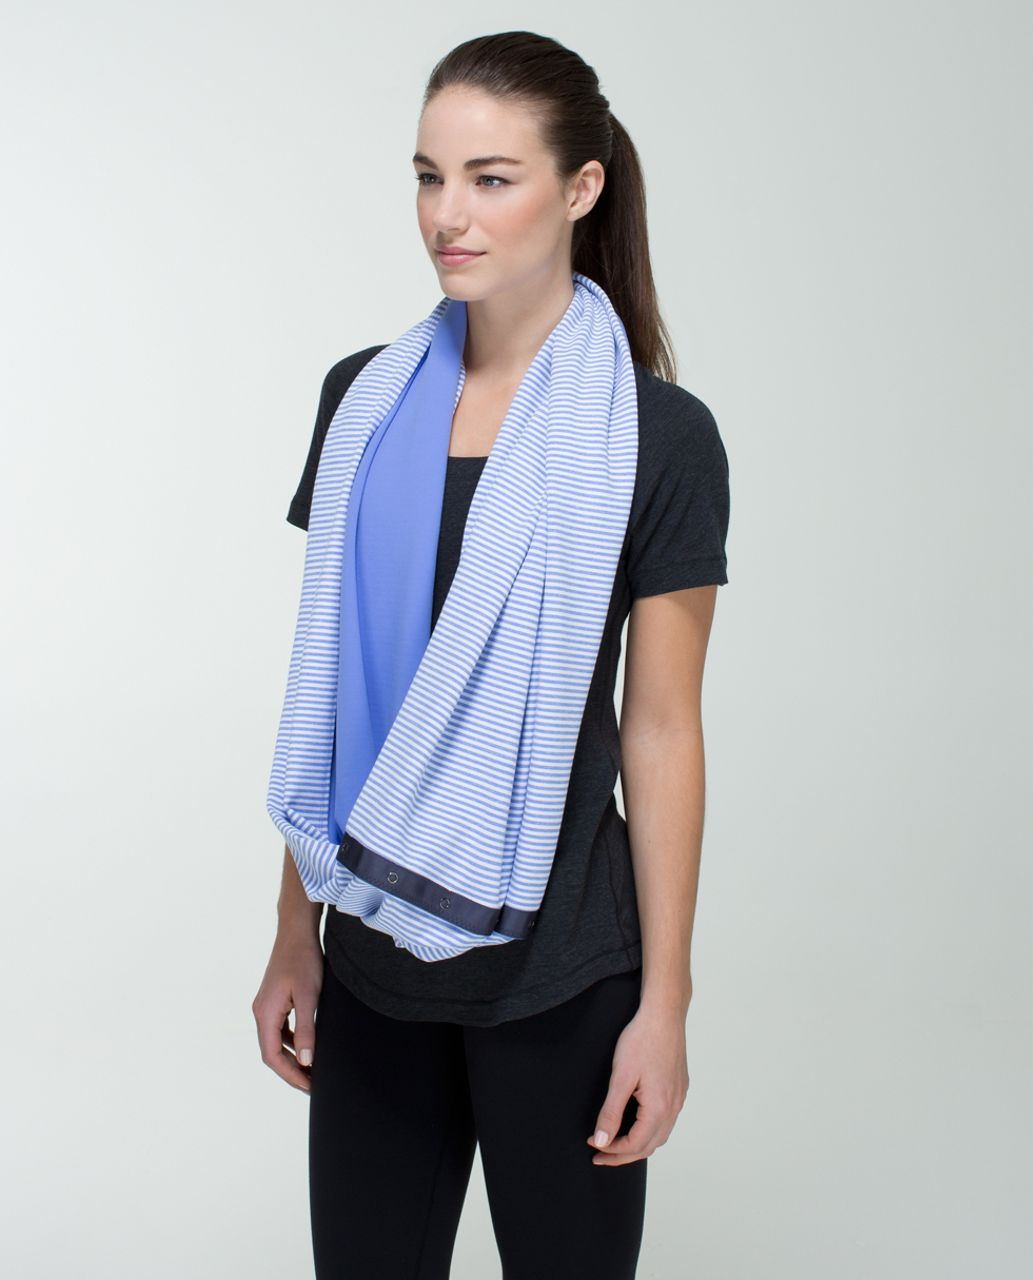 Lululemon Vinyasa Scarf *Rulu - Lullaby / 1/8 Stripe Heathered Lullaby White